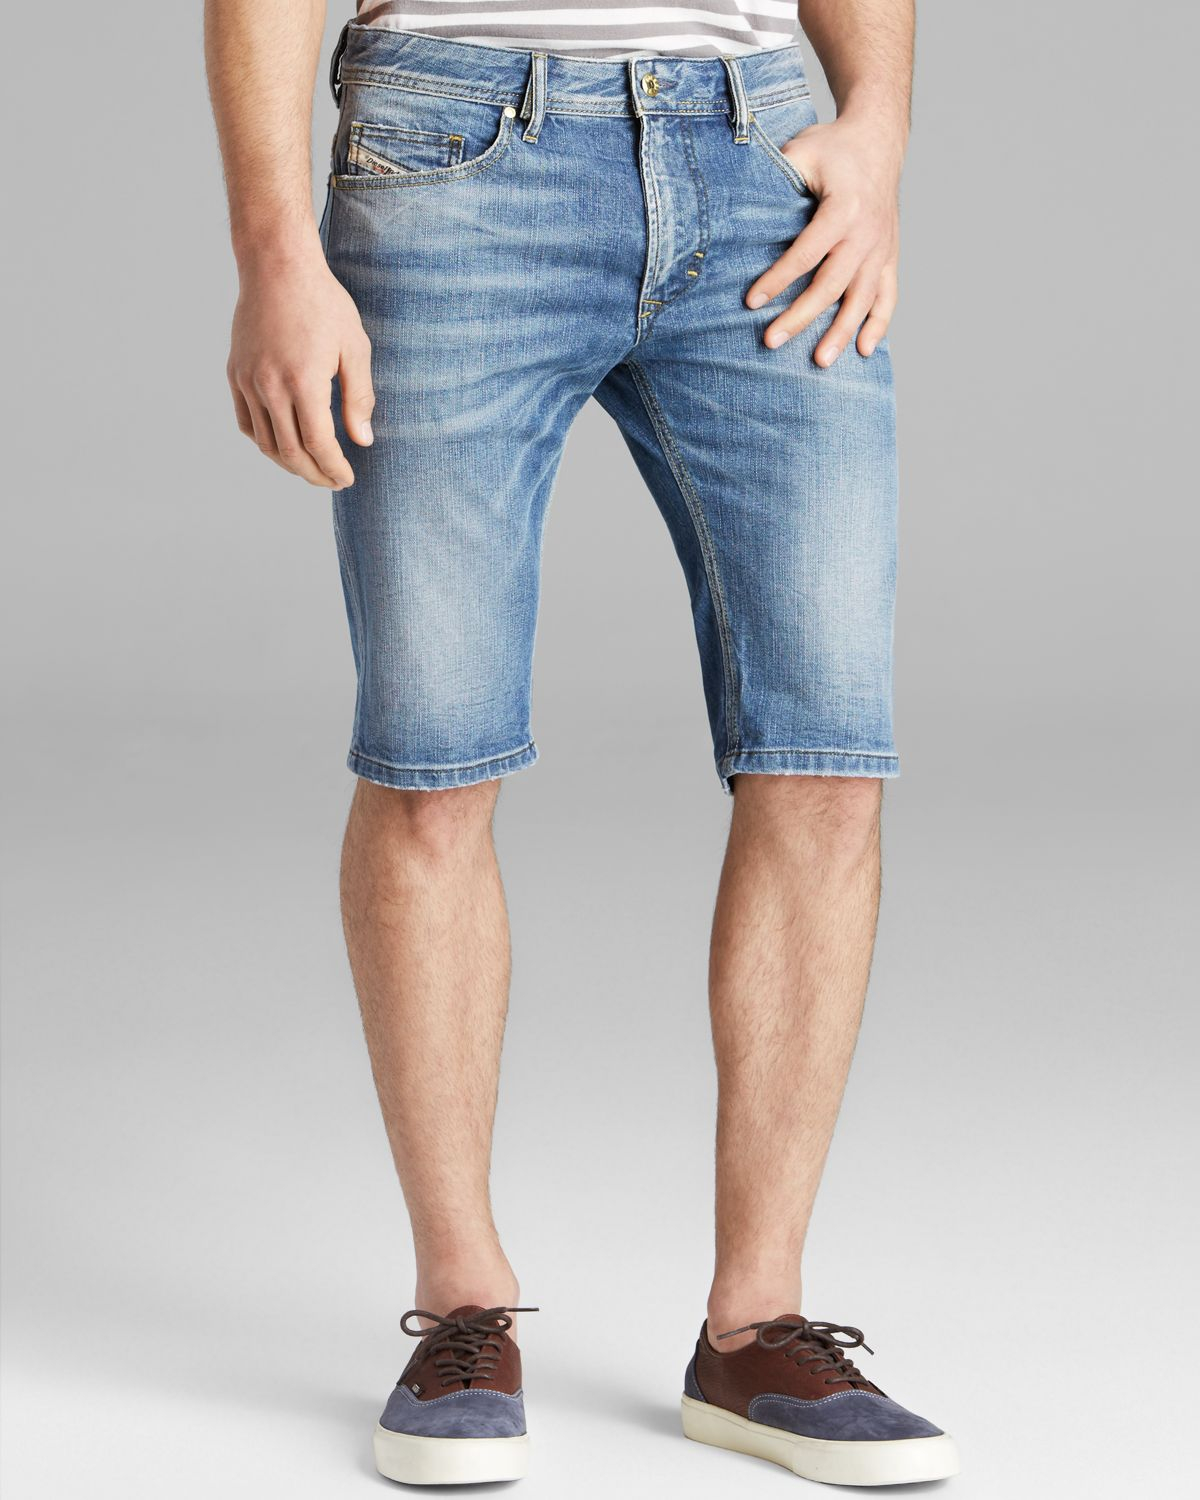 517c06c901 DIESEL Thashort Denim Shorts in Blue for Men - Lyst